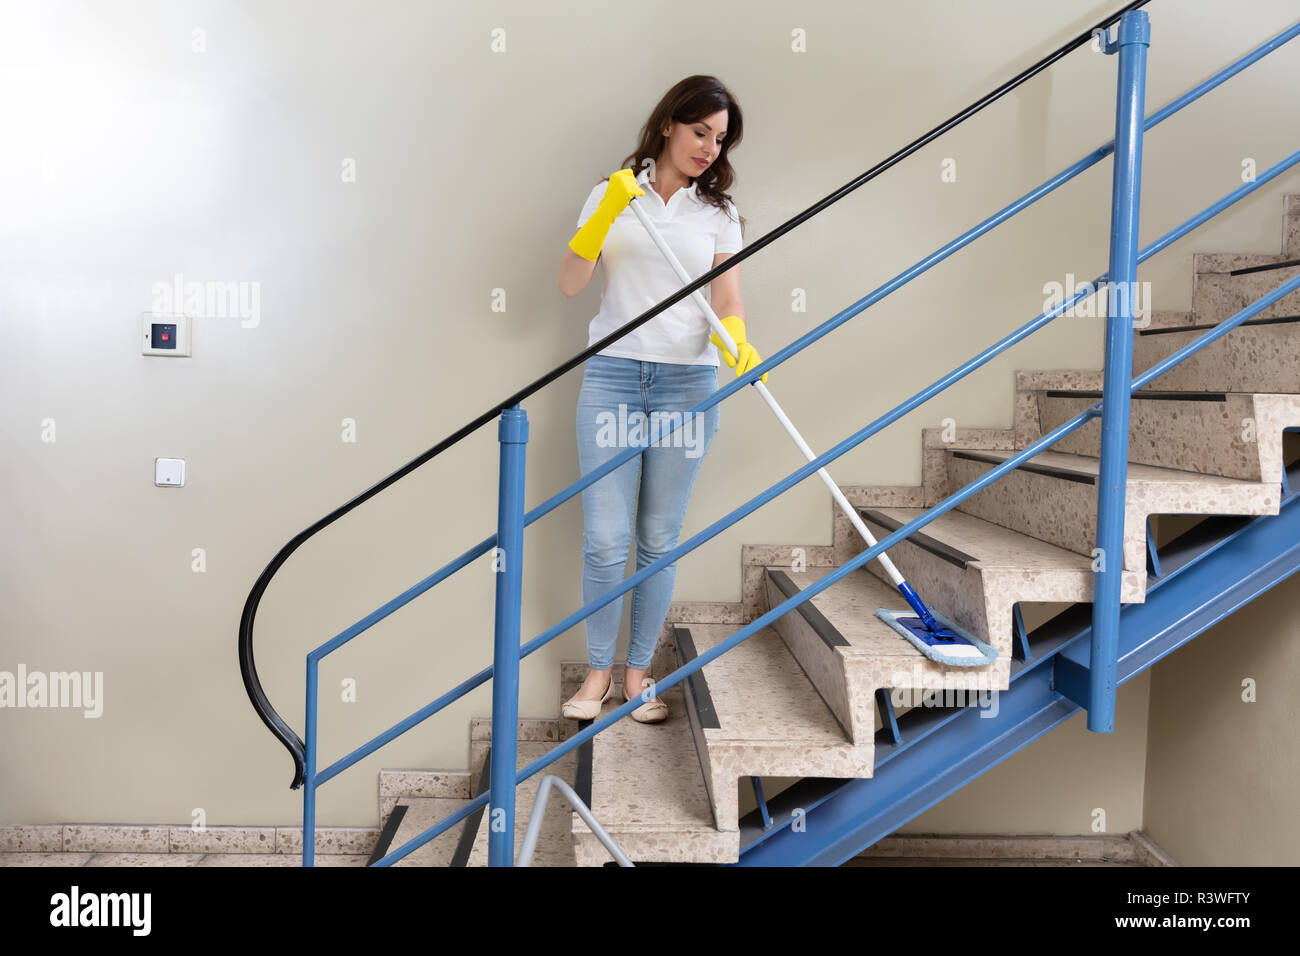 Young Female Janitor Cleaning Staircase With Mop - Stock Image